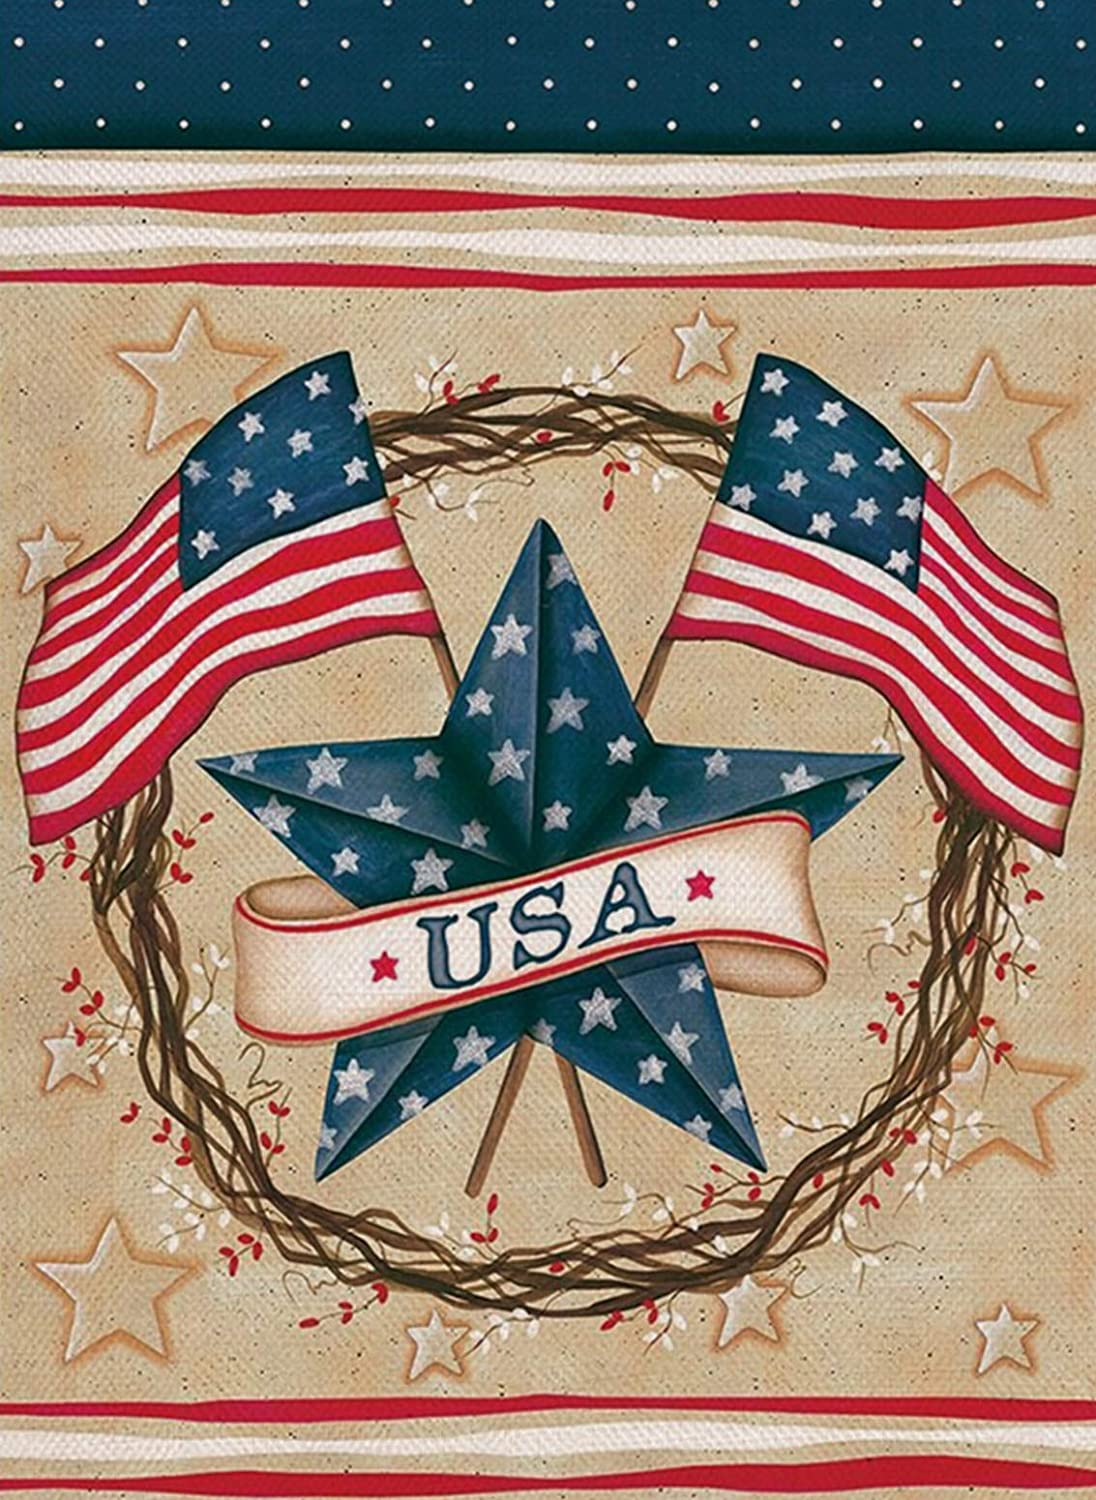 Covido 4th of July Home Decorative Garden Flag, Patriotic American Flag House Yard Decor Spring Summer USA Star Sign Holiday Welcome Outside Decoration Seasonal Outdoor Small Flag Double Sided 12 x 18